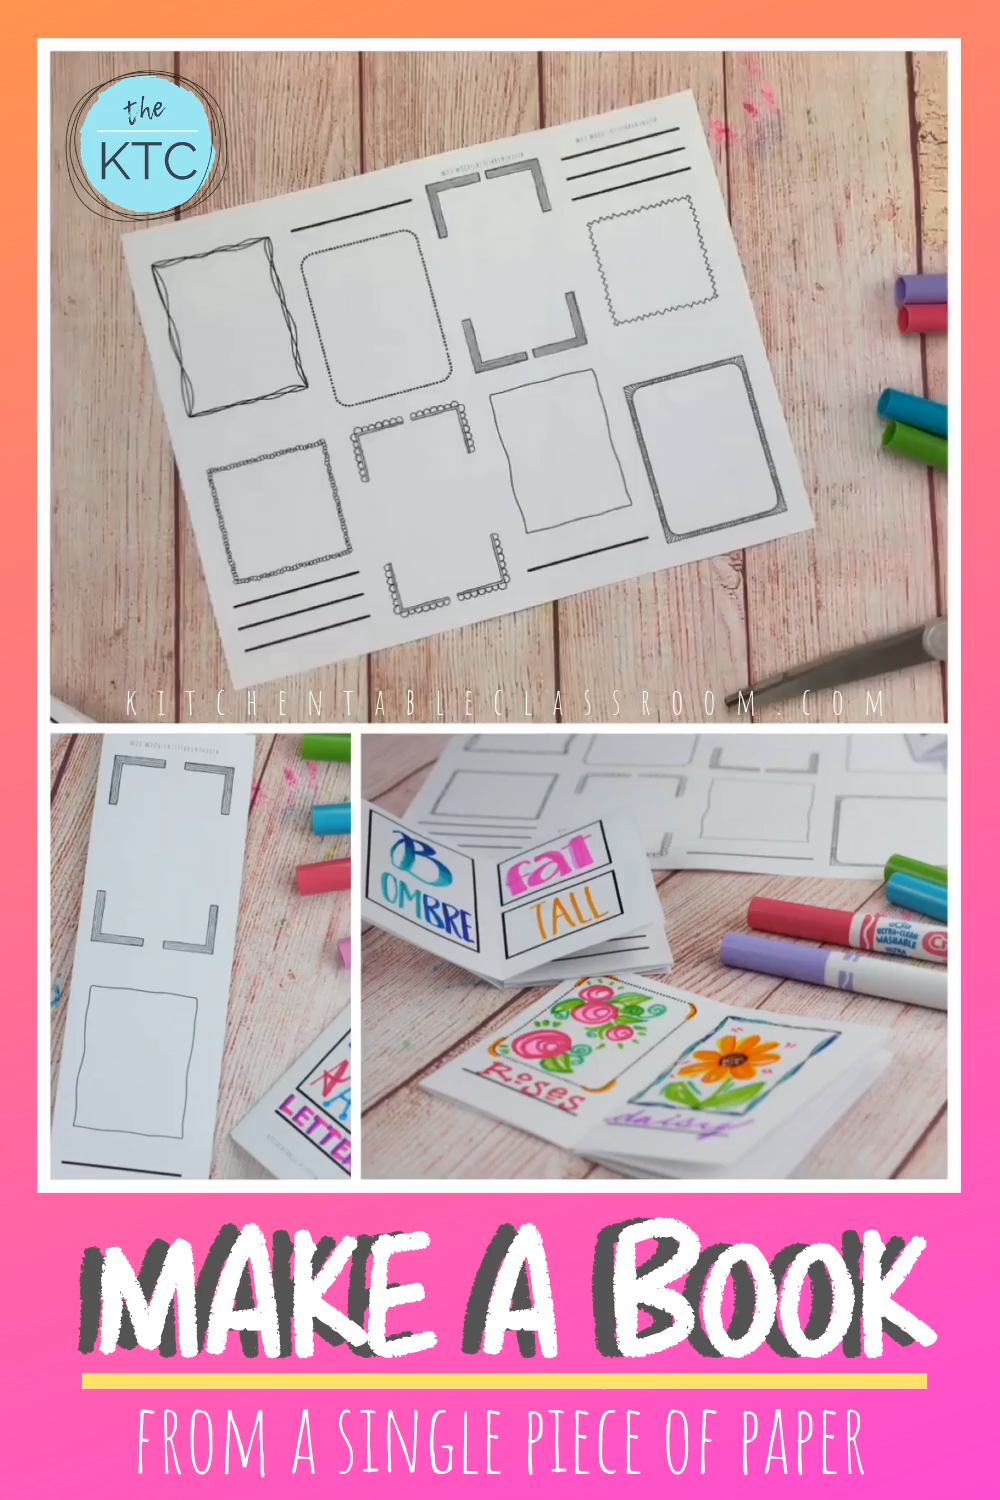 Learn How To Make A Book From A Single Piece Of Paper Choose From Two Free Templates Plus A Free Video Tutorial Bo In 2020 Book Making Book Crafts Paper Crafts Diy